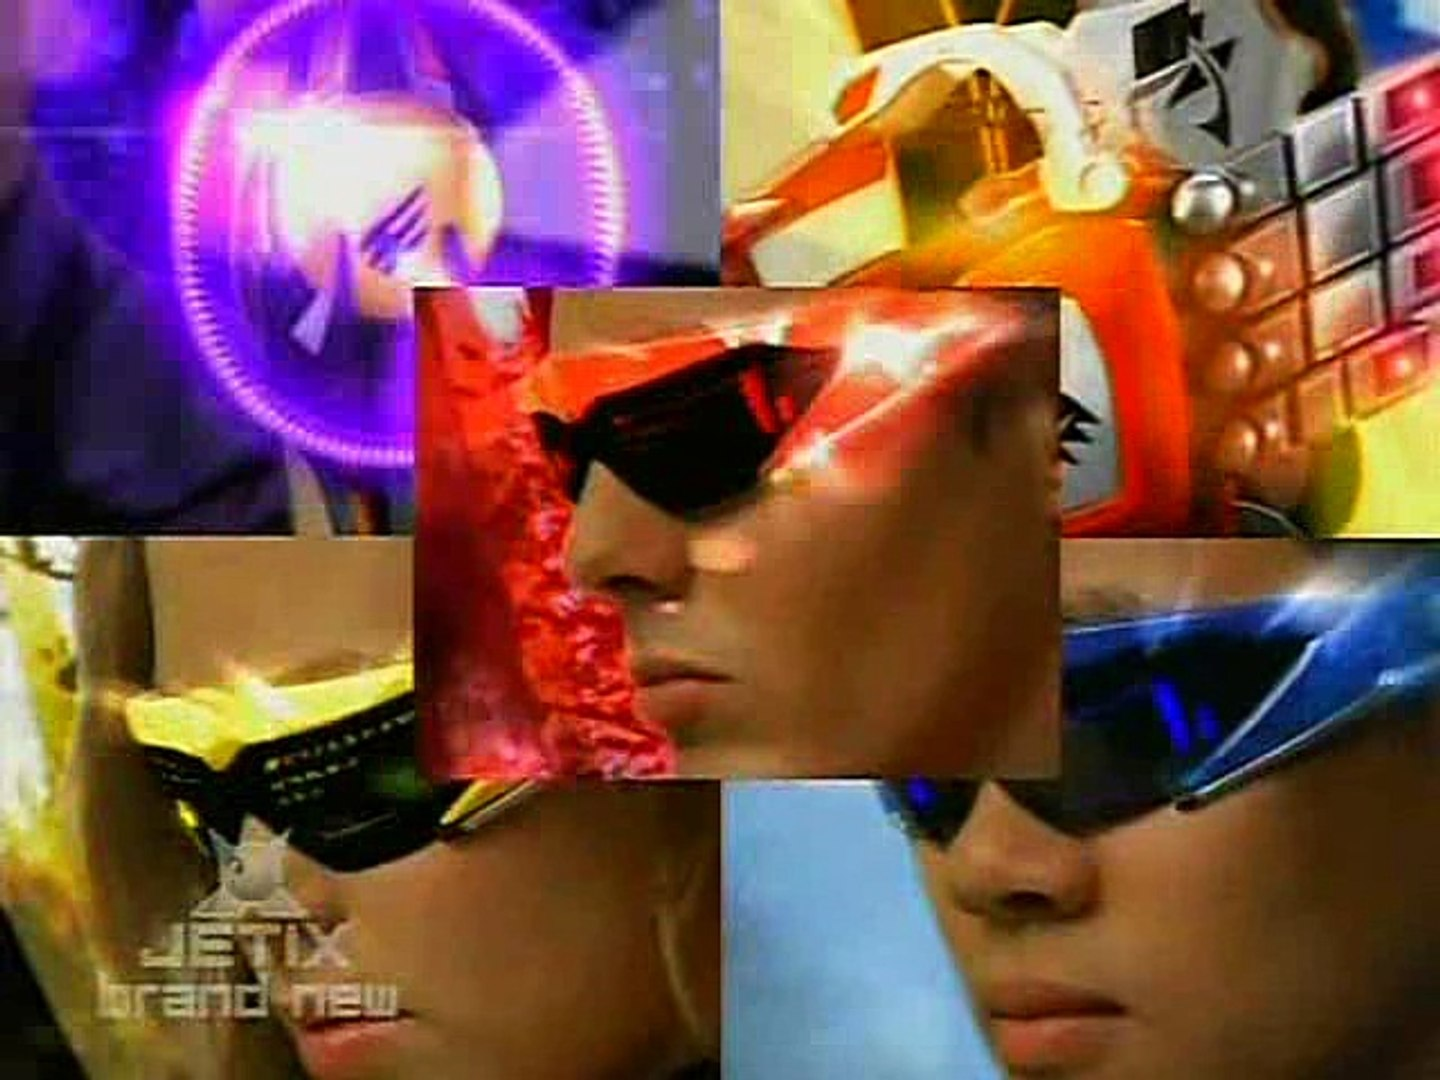 Power Rangers Jungle Fury S01e32 Now The Final Fury (11-03-08)